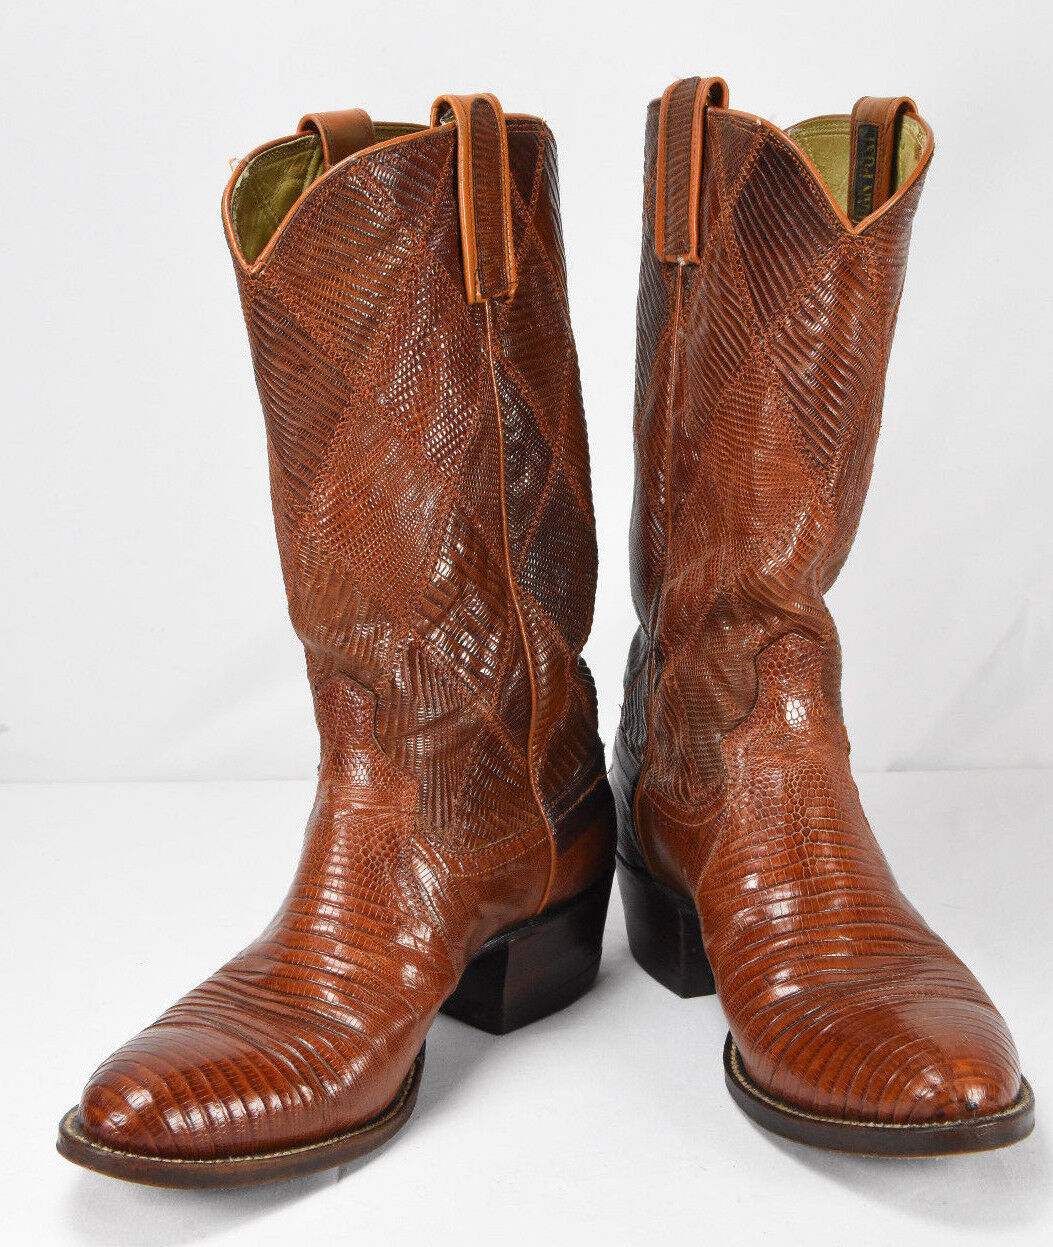 Dan Post Mens Brown Tan FULL Lizard Leather Exotic Cowboy Boots Vintage Size 7 D